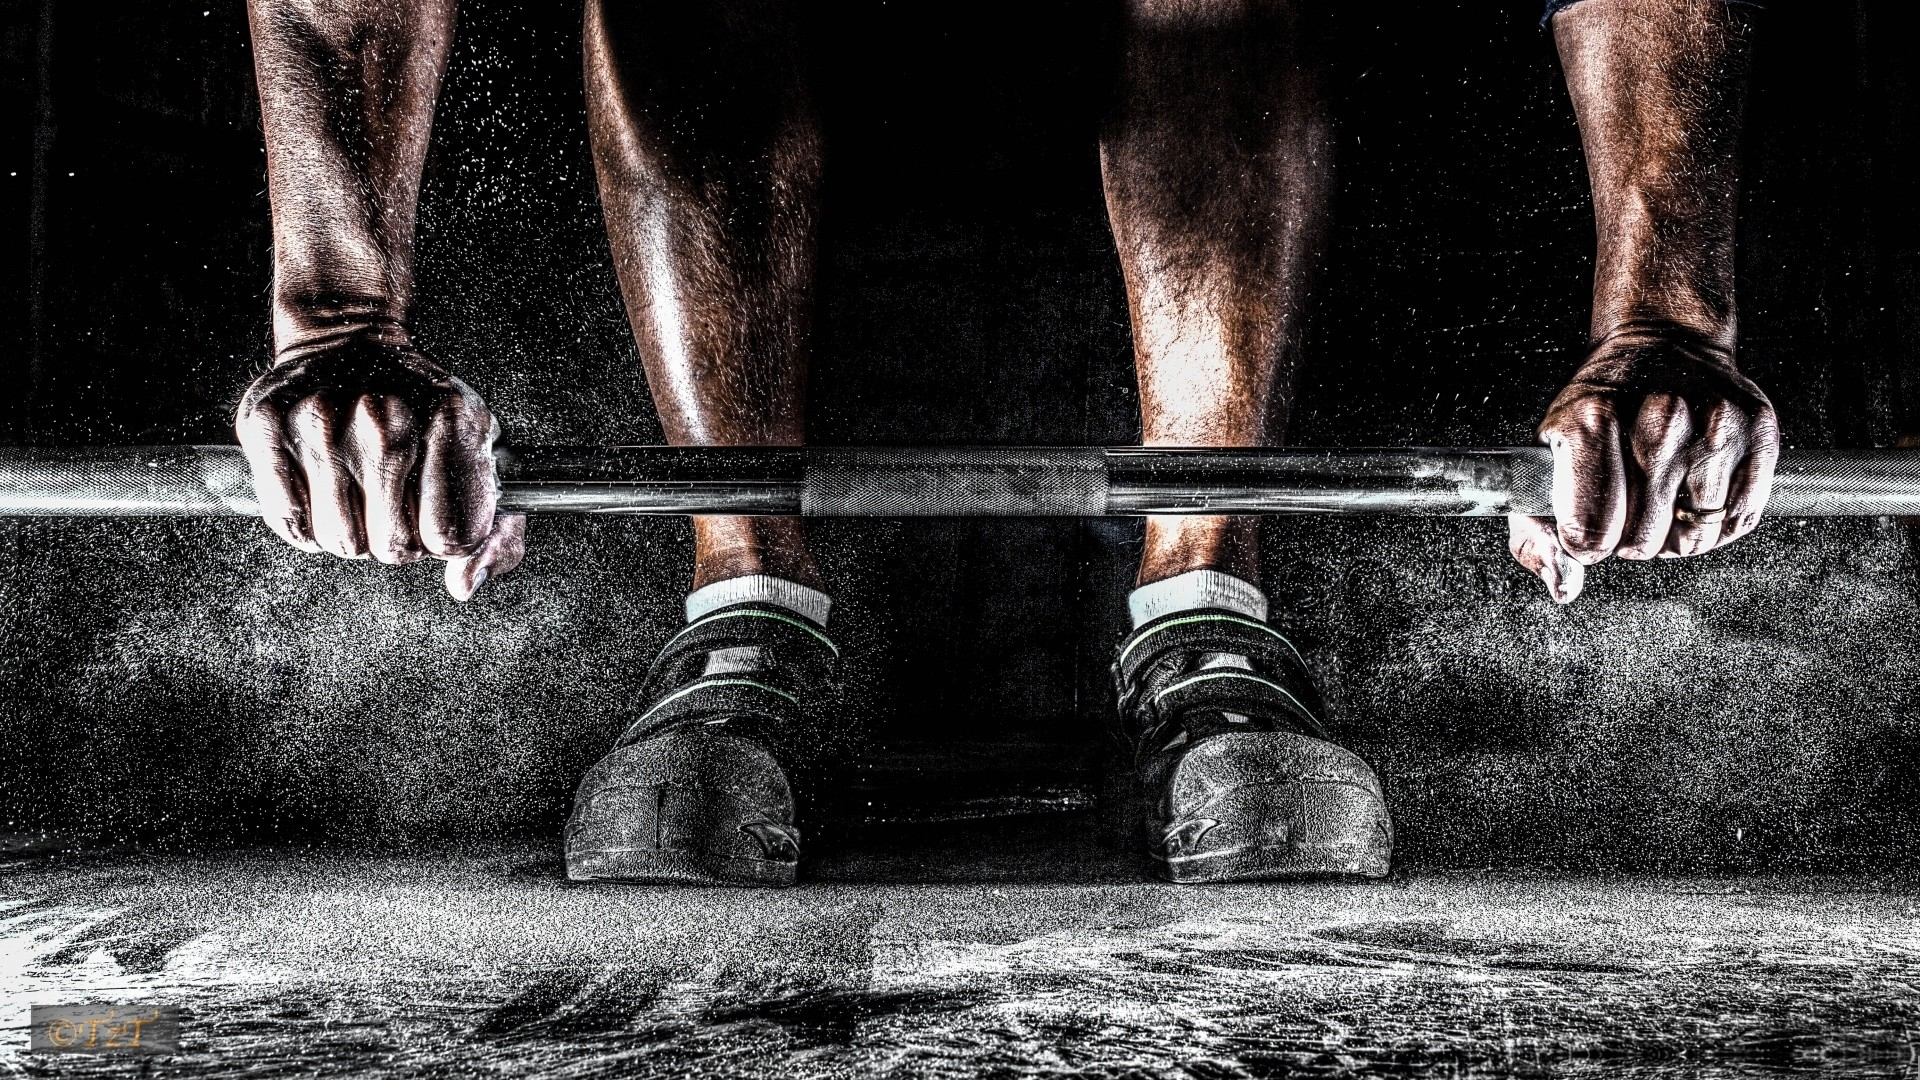 Barbell on the floor, lifting – HD wallpaper download. Wallpapers .